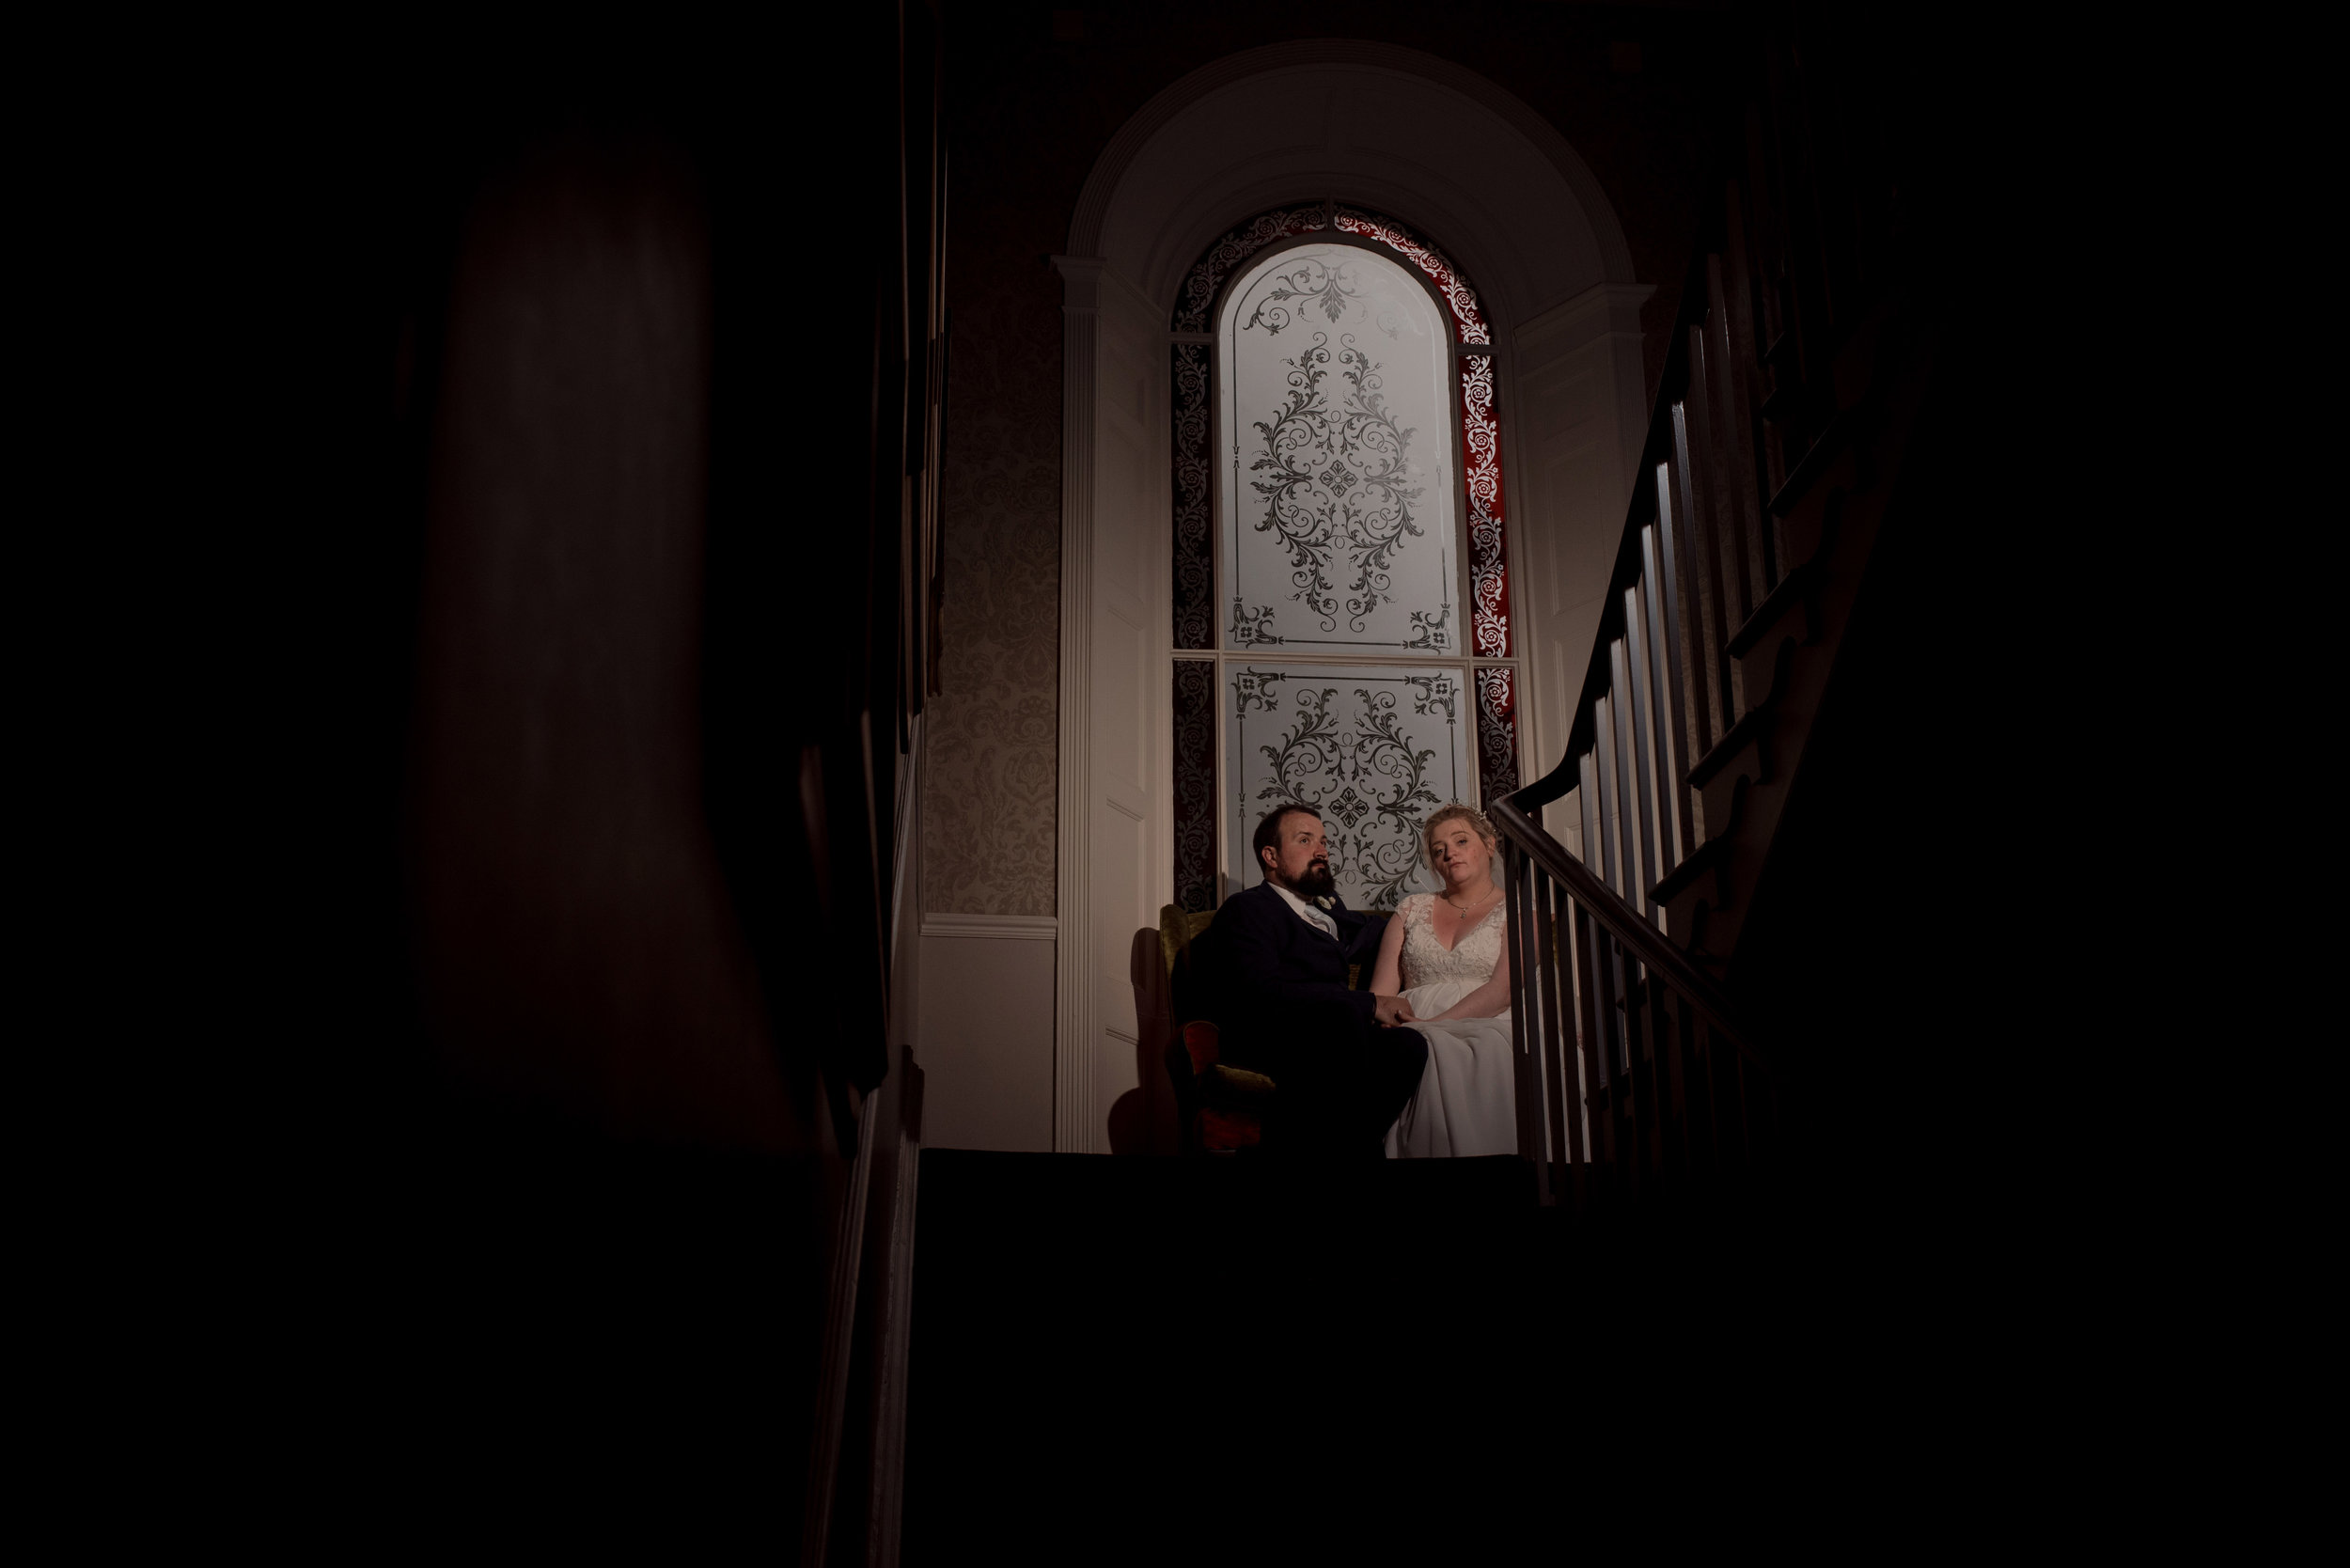 The bride and groom sit at the top of the stairs in their wedding venue and pose for a wedding photograph